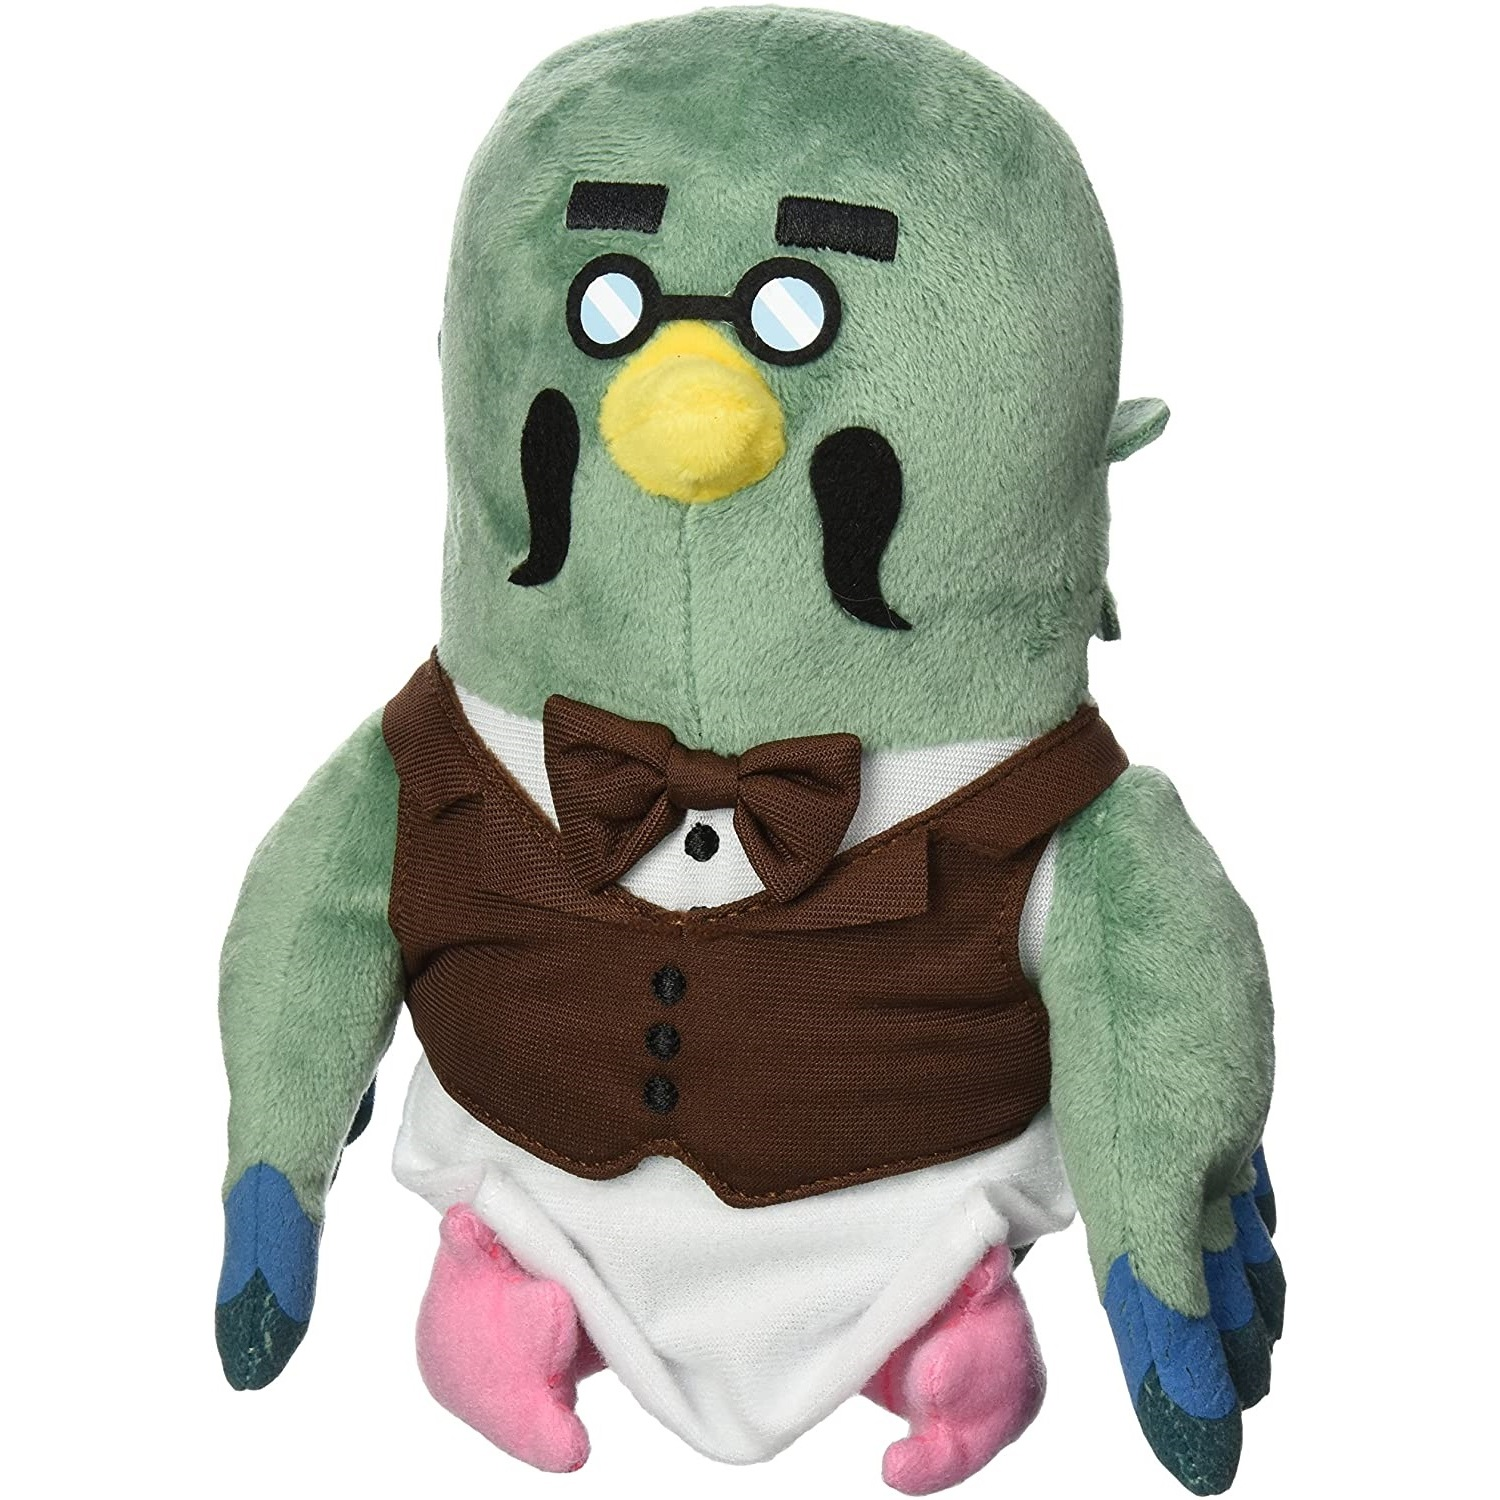 Brewster Official Animal Crossing Plush (1)